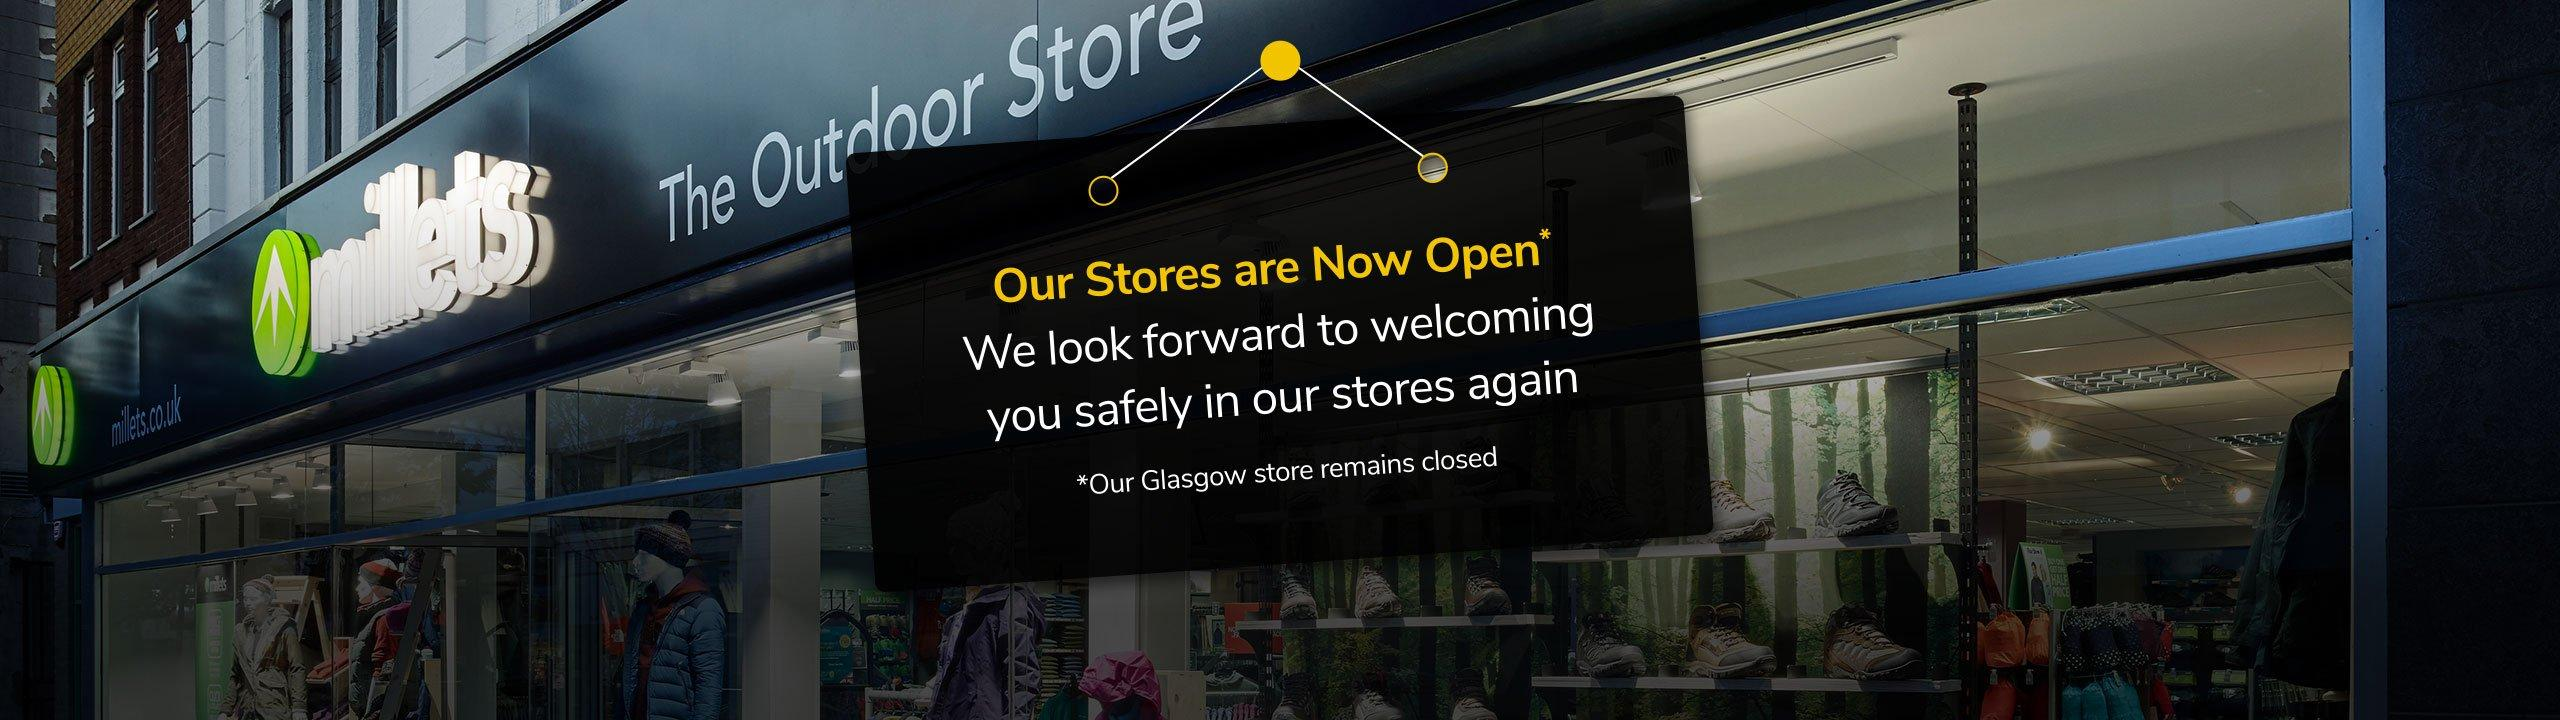 Our Stores are Now Open